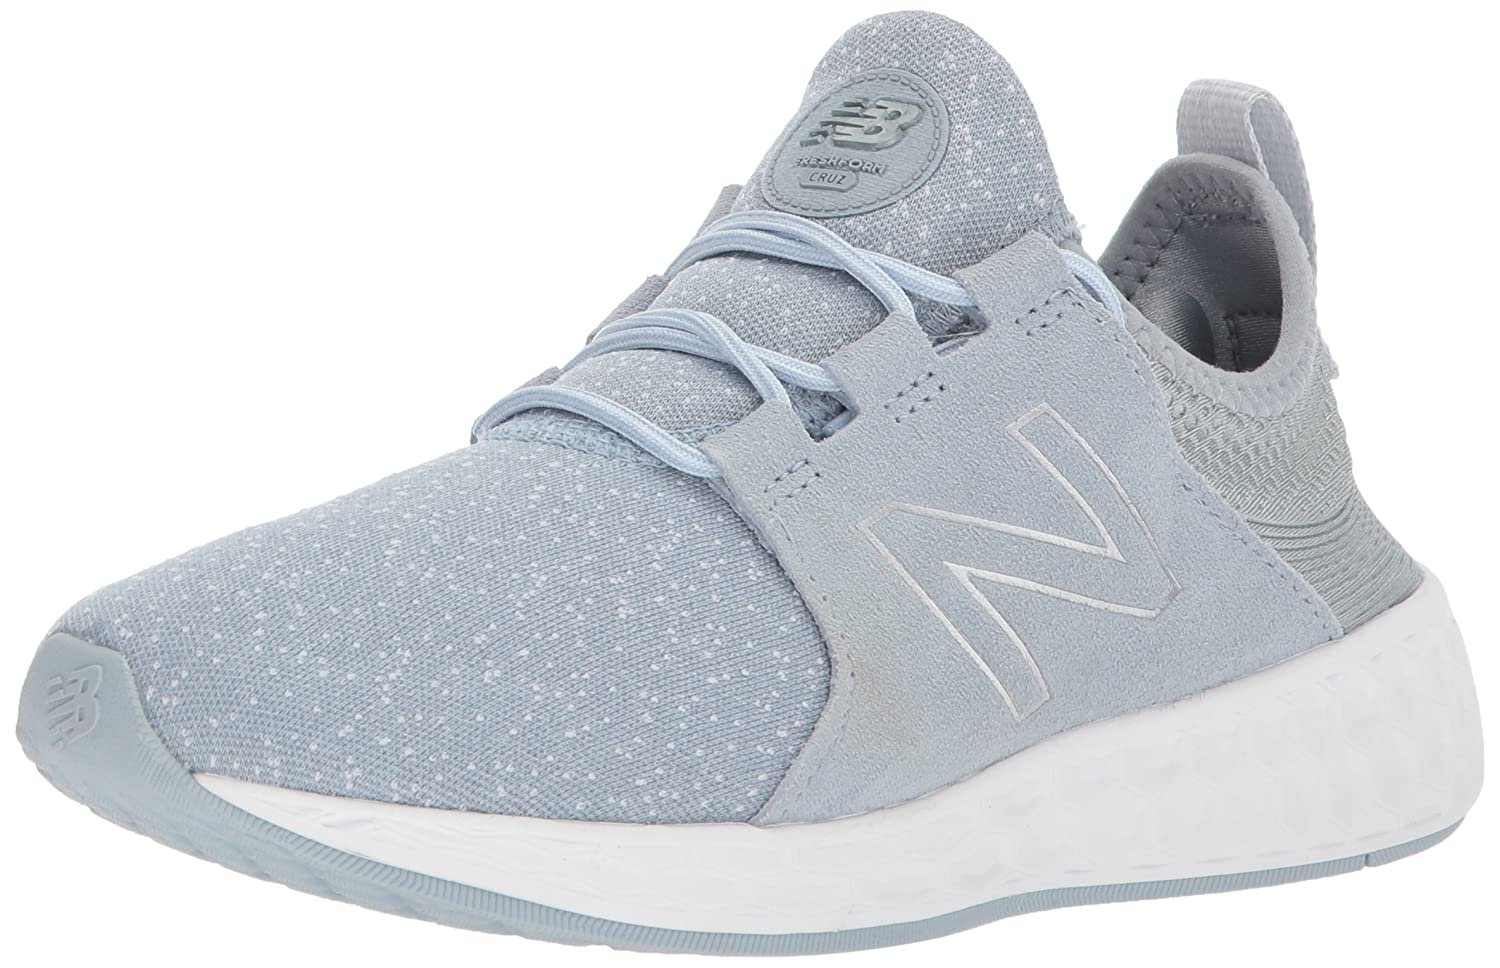 New Balance Women's Fresh Foam Cruz V1 Retro Hoodie Running Shoe B06XXCBF34 6 B(M) US|Grey With Pigment